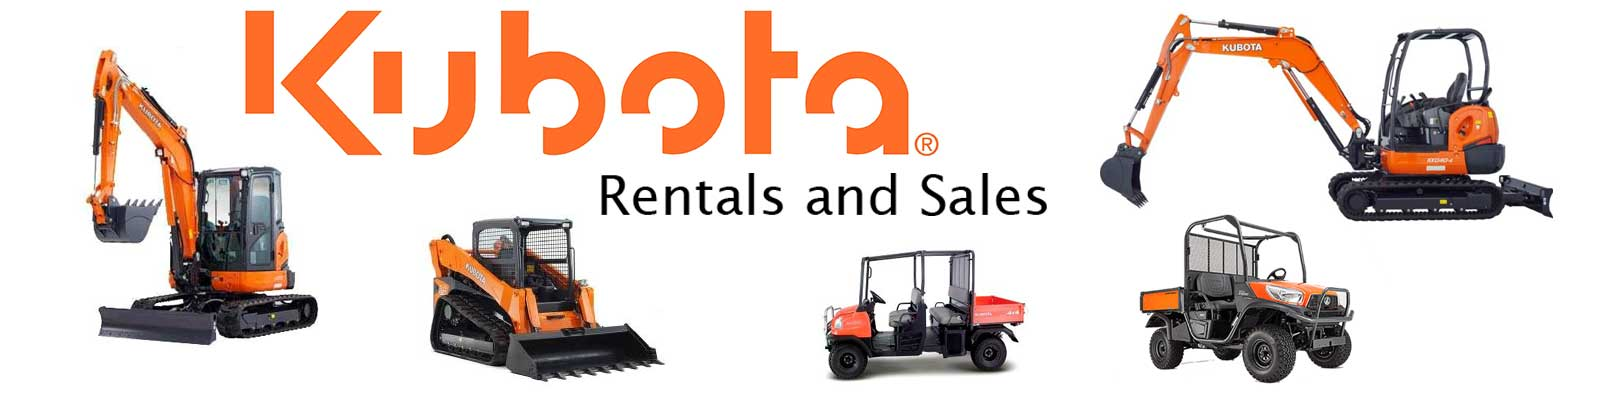 Equipment rentals in Brunswick, Avon, Akron OH, Westlake, Avon Lake, Beachwood, Northeast Ohio